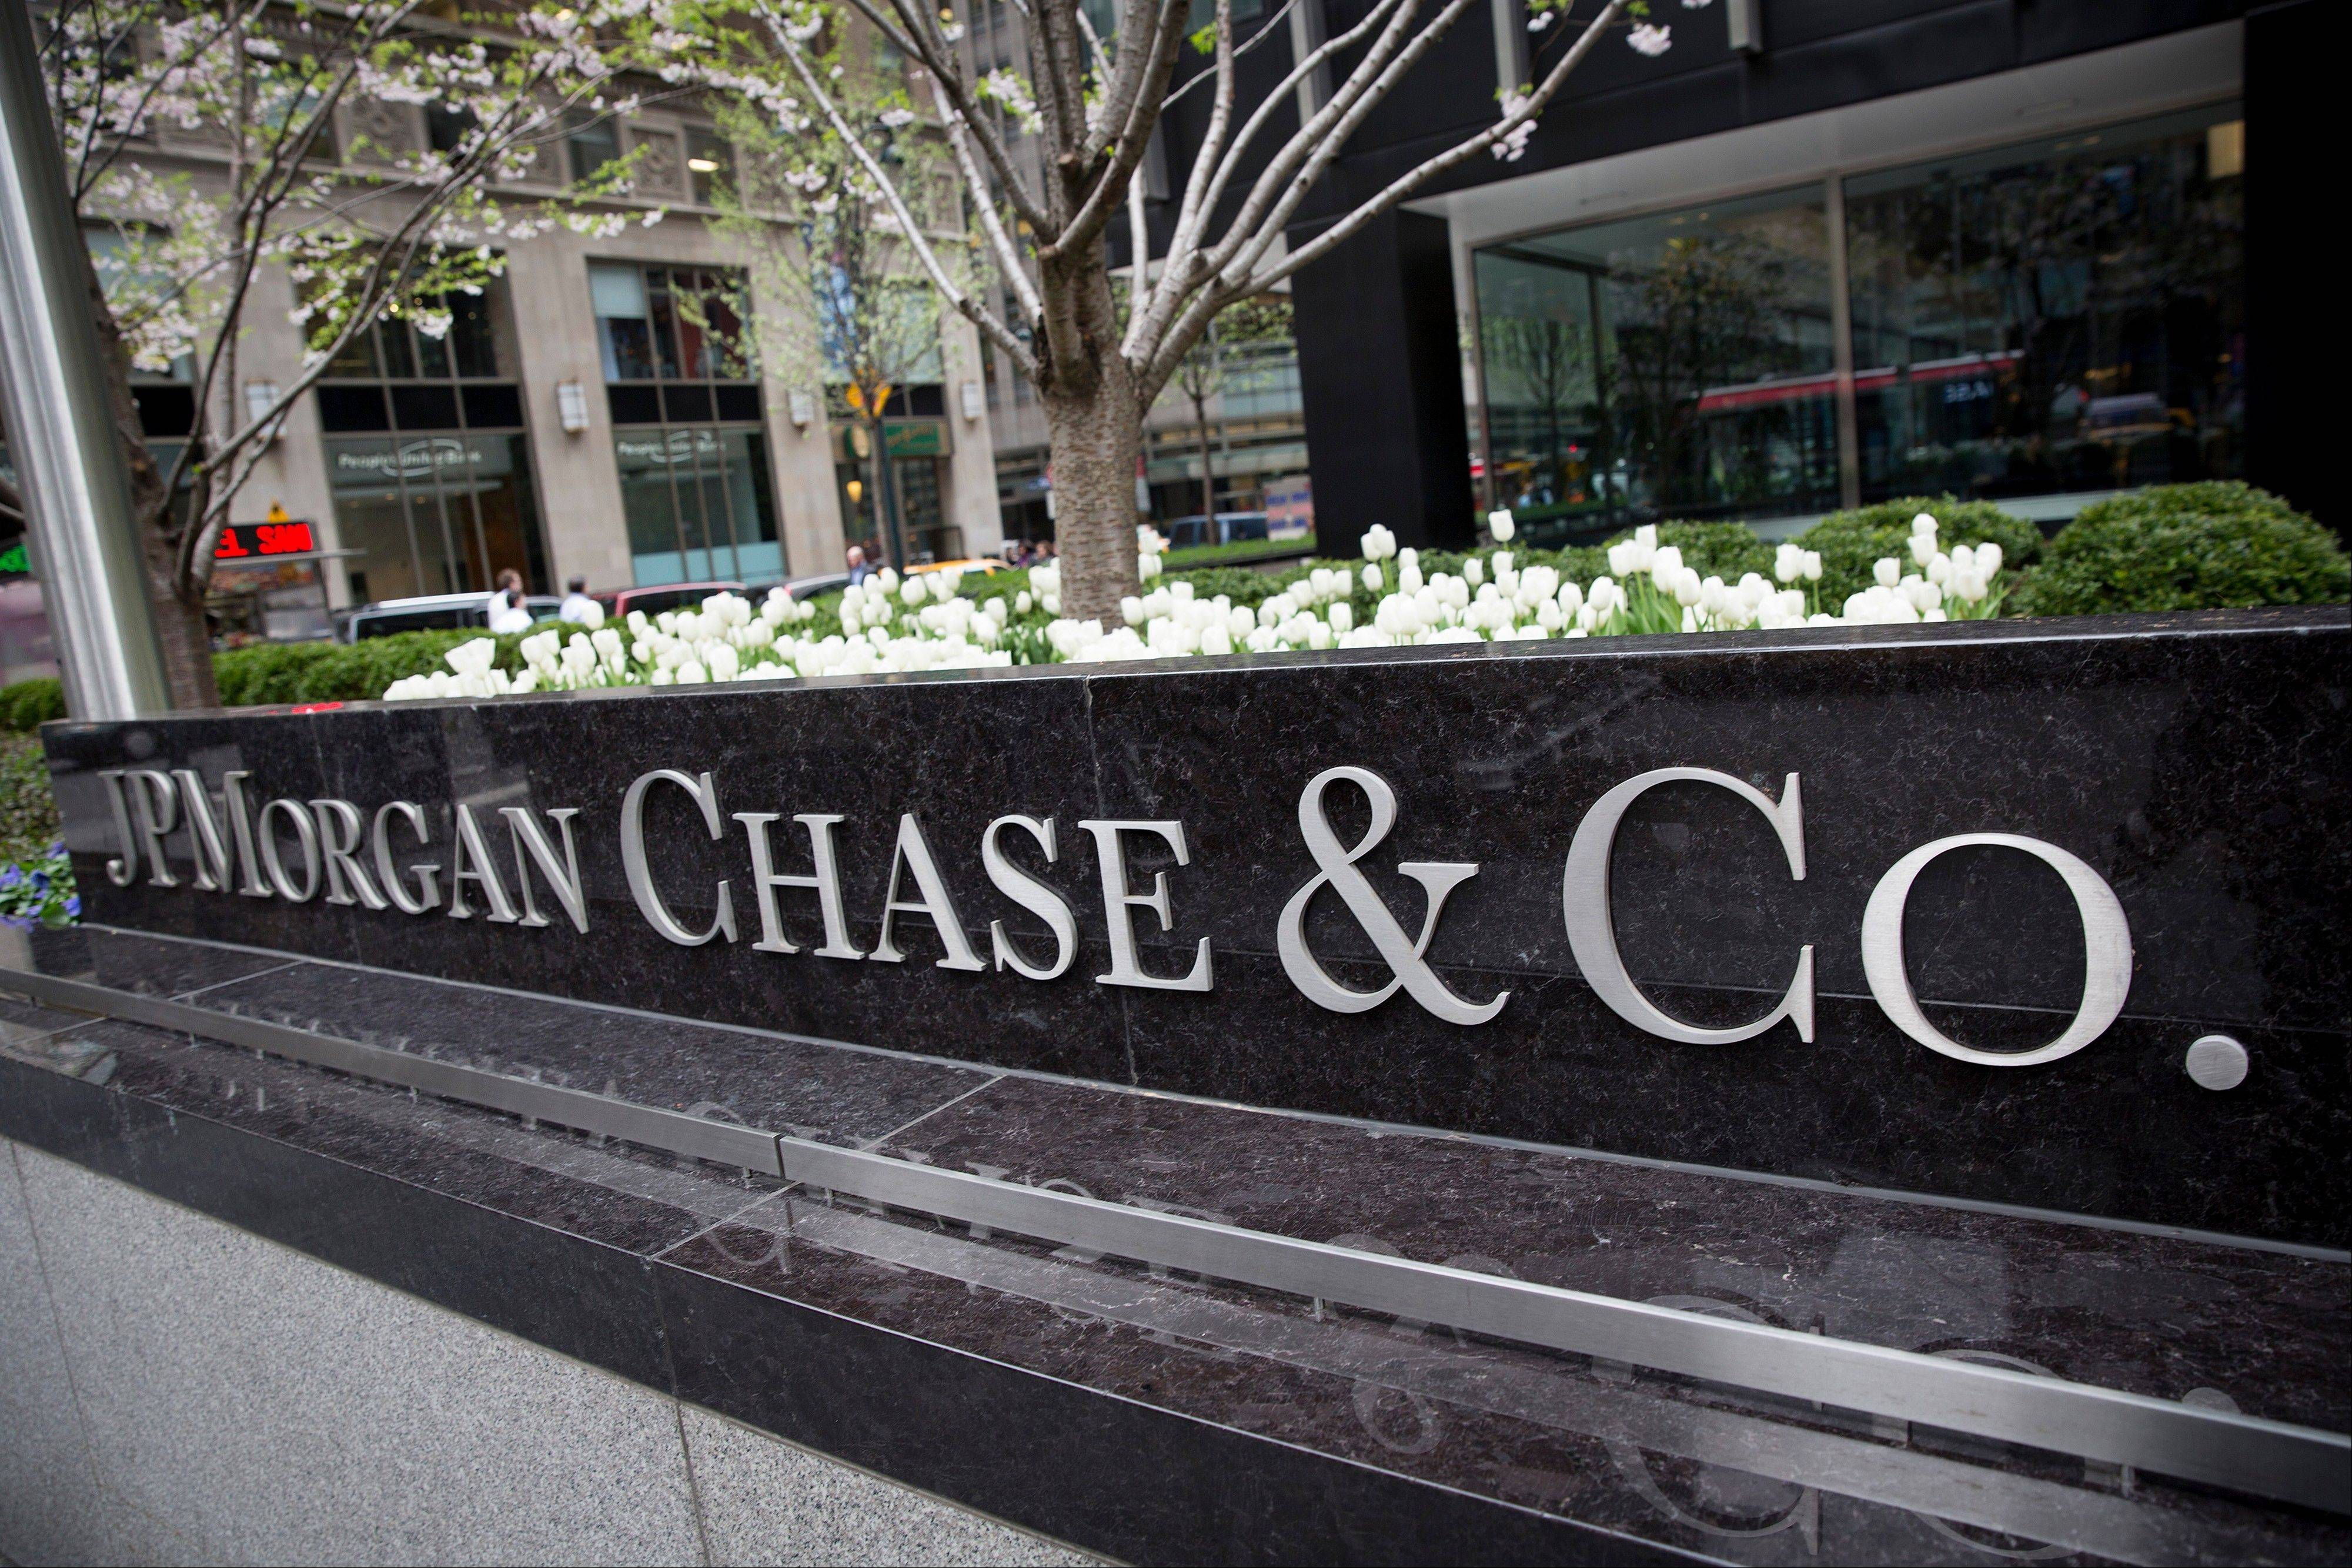 JPMorgan Chase, the country's biggest bank by assets, says its first-quarter earnings soared, even as revenue fell slightly.